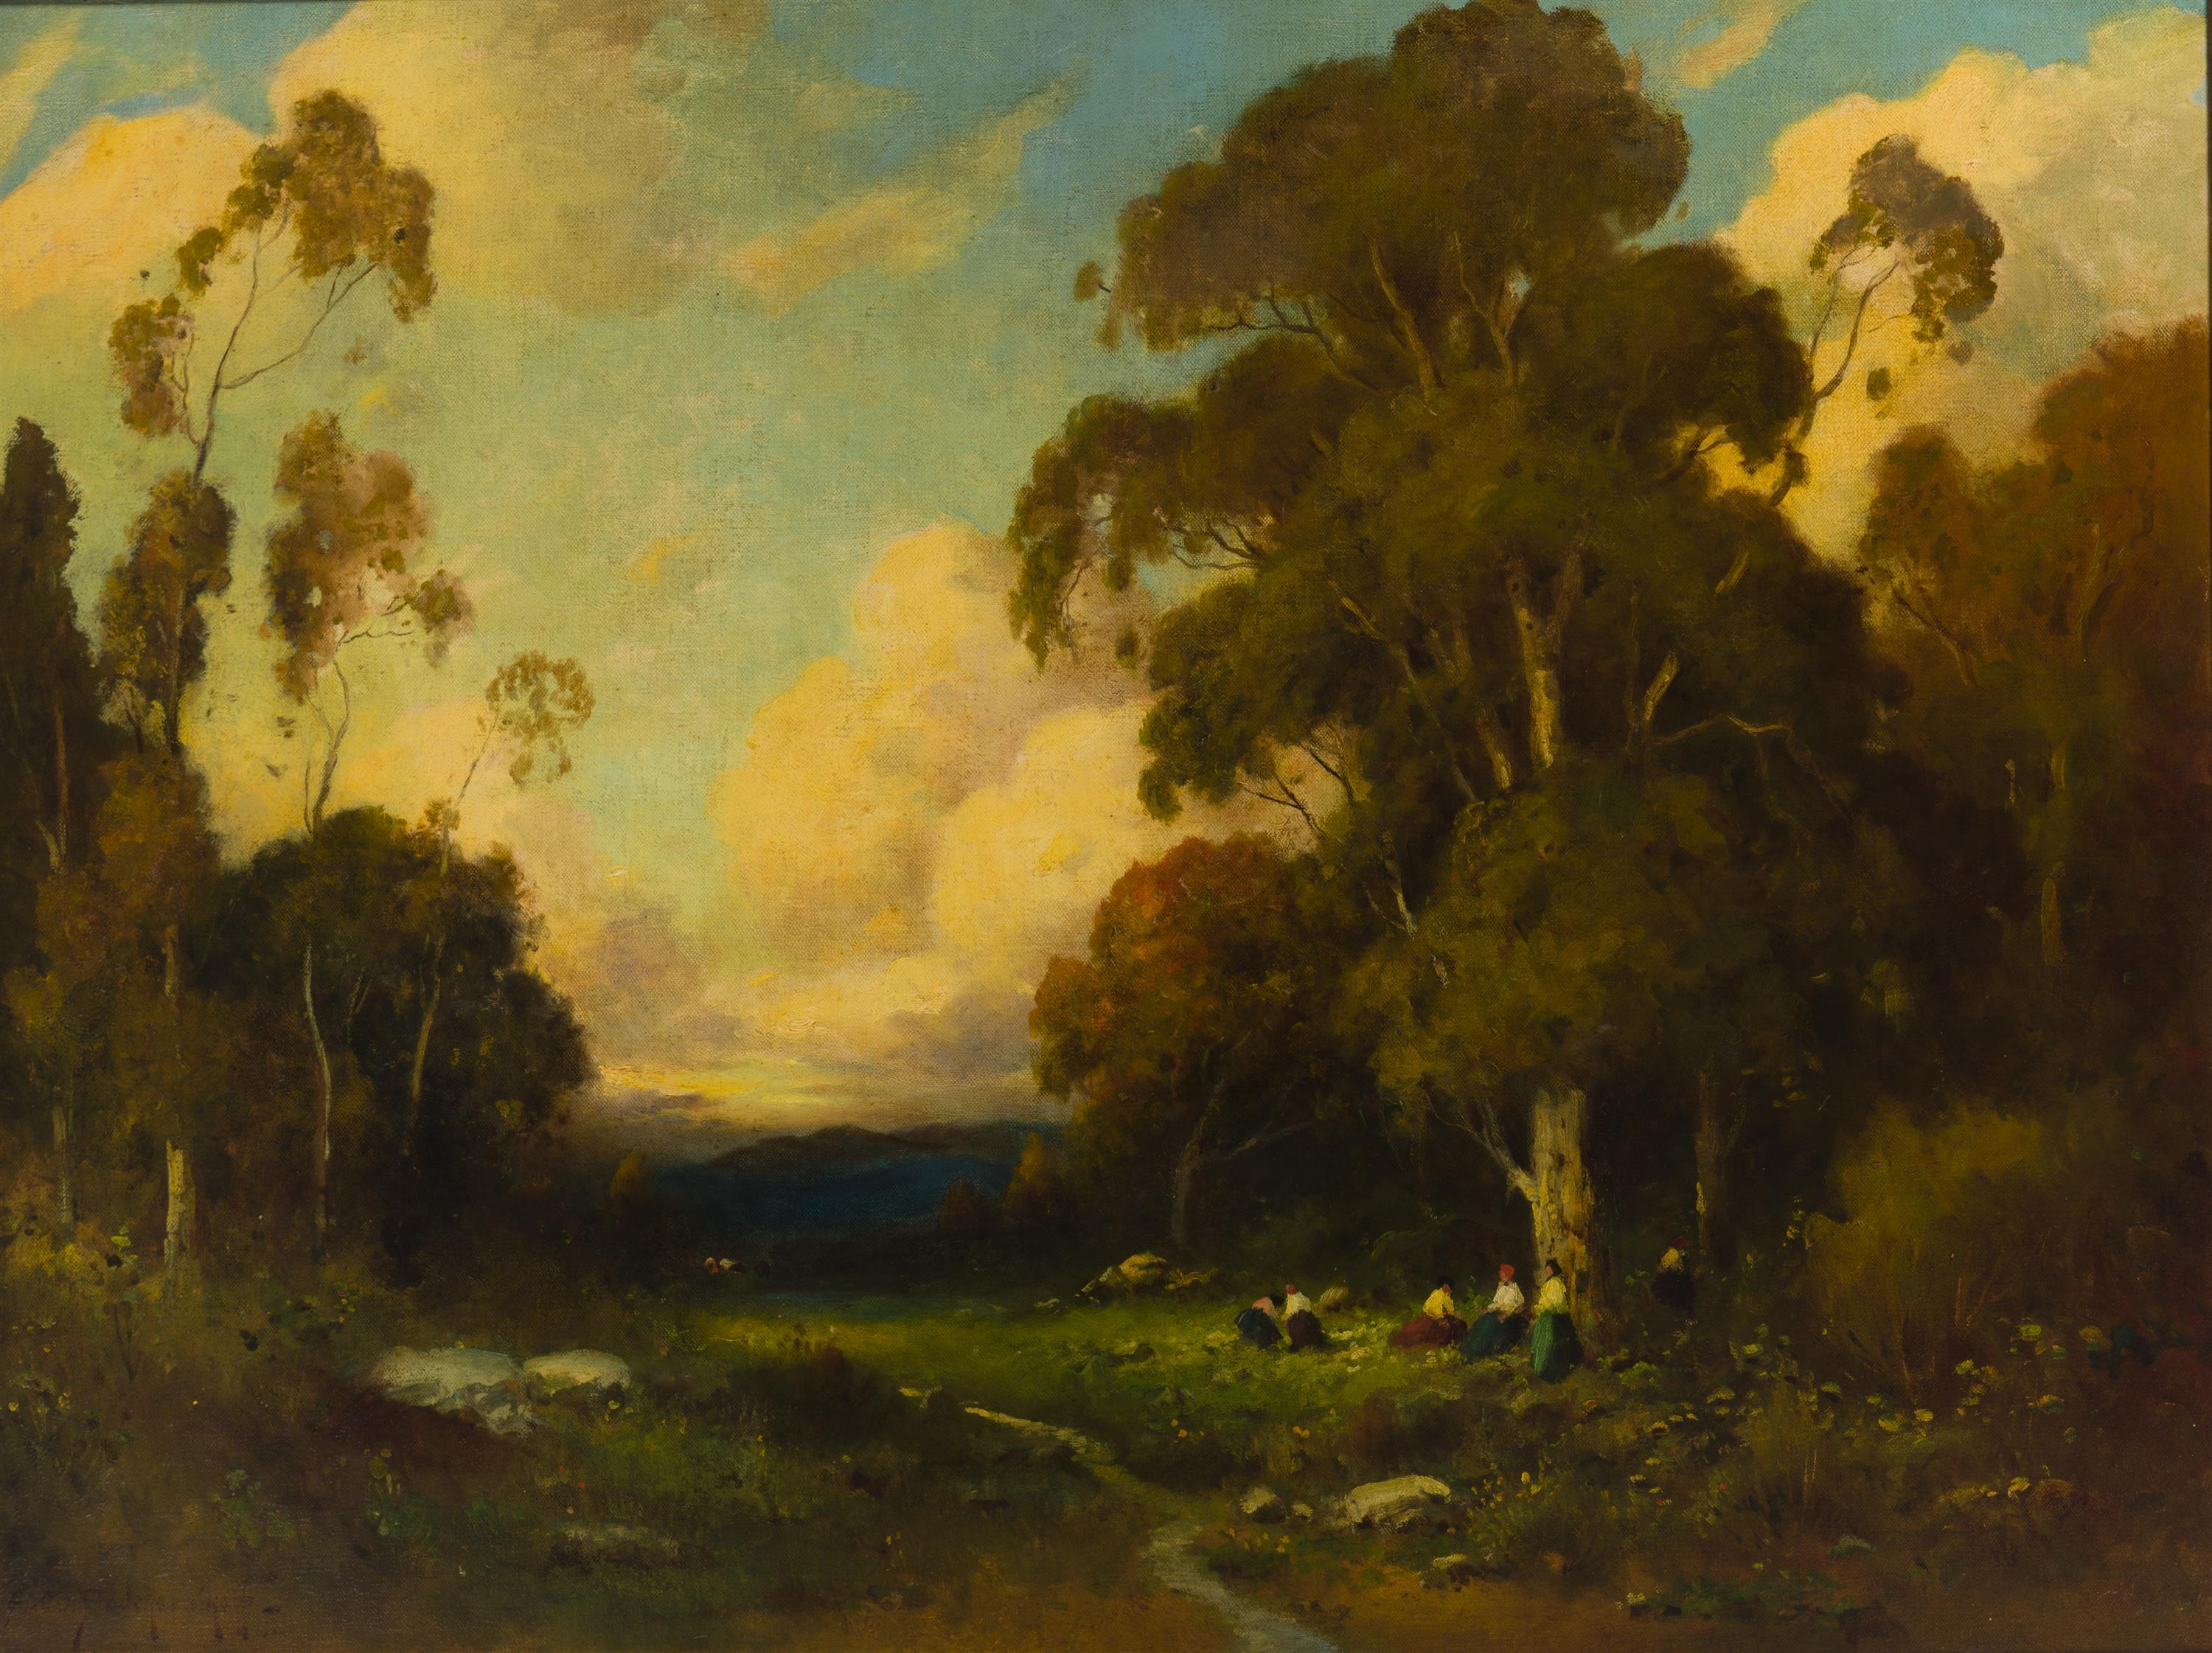 "Alexis Podchernikoff, (1886-1933 Pasadena, CA), Figures in a landscape near a stream, Oil on canvas, 30"" H x 40"" W"